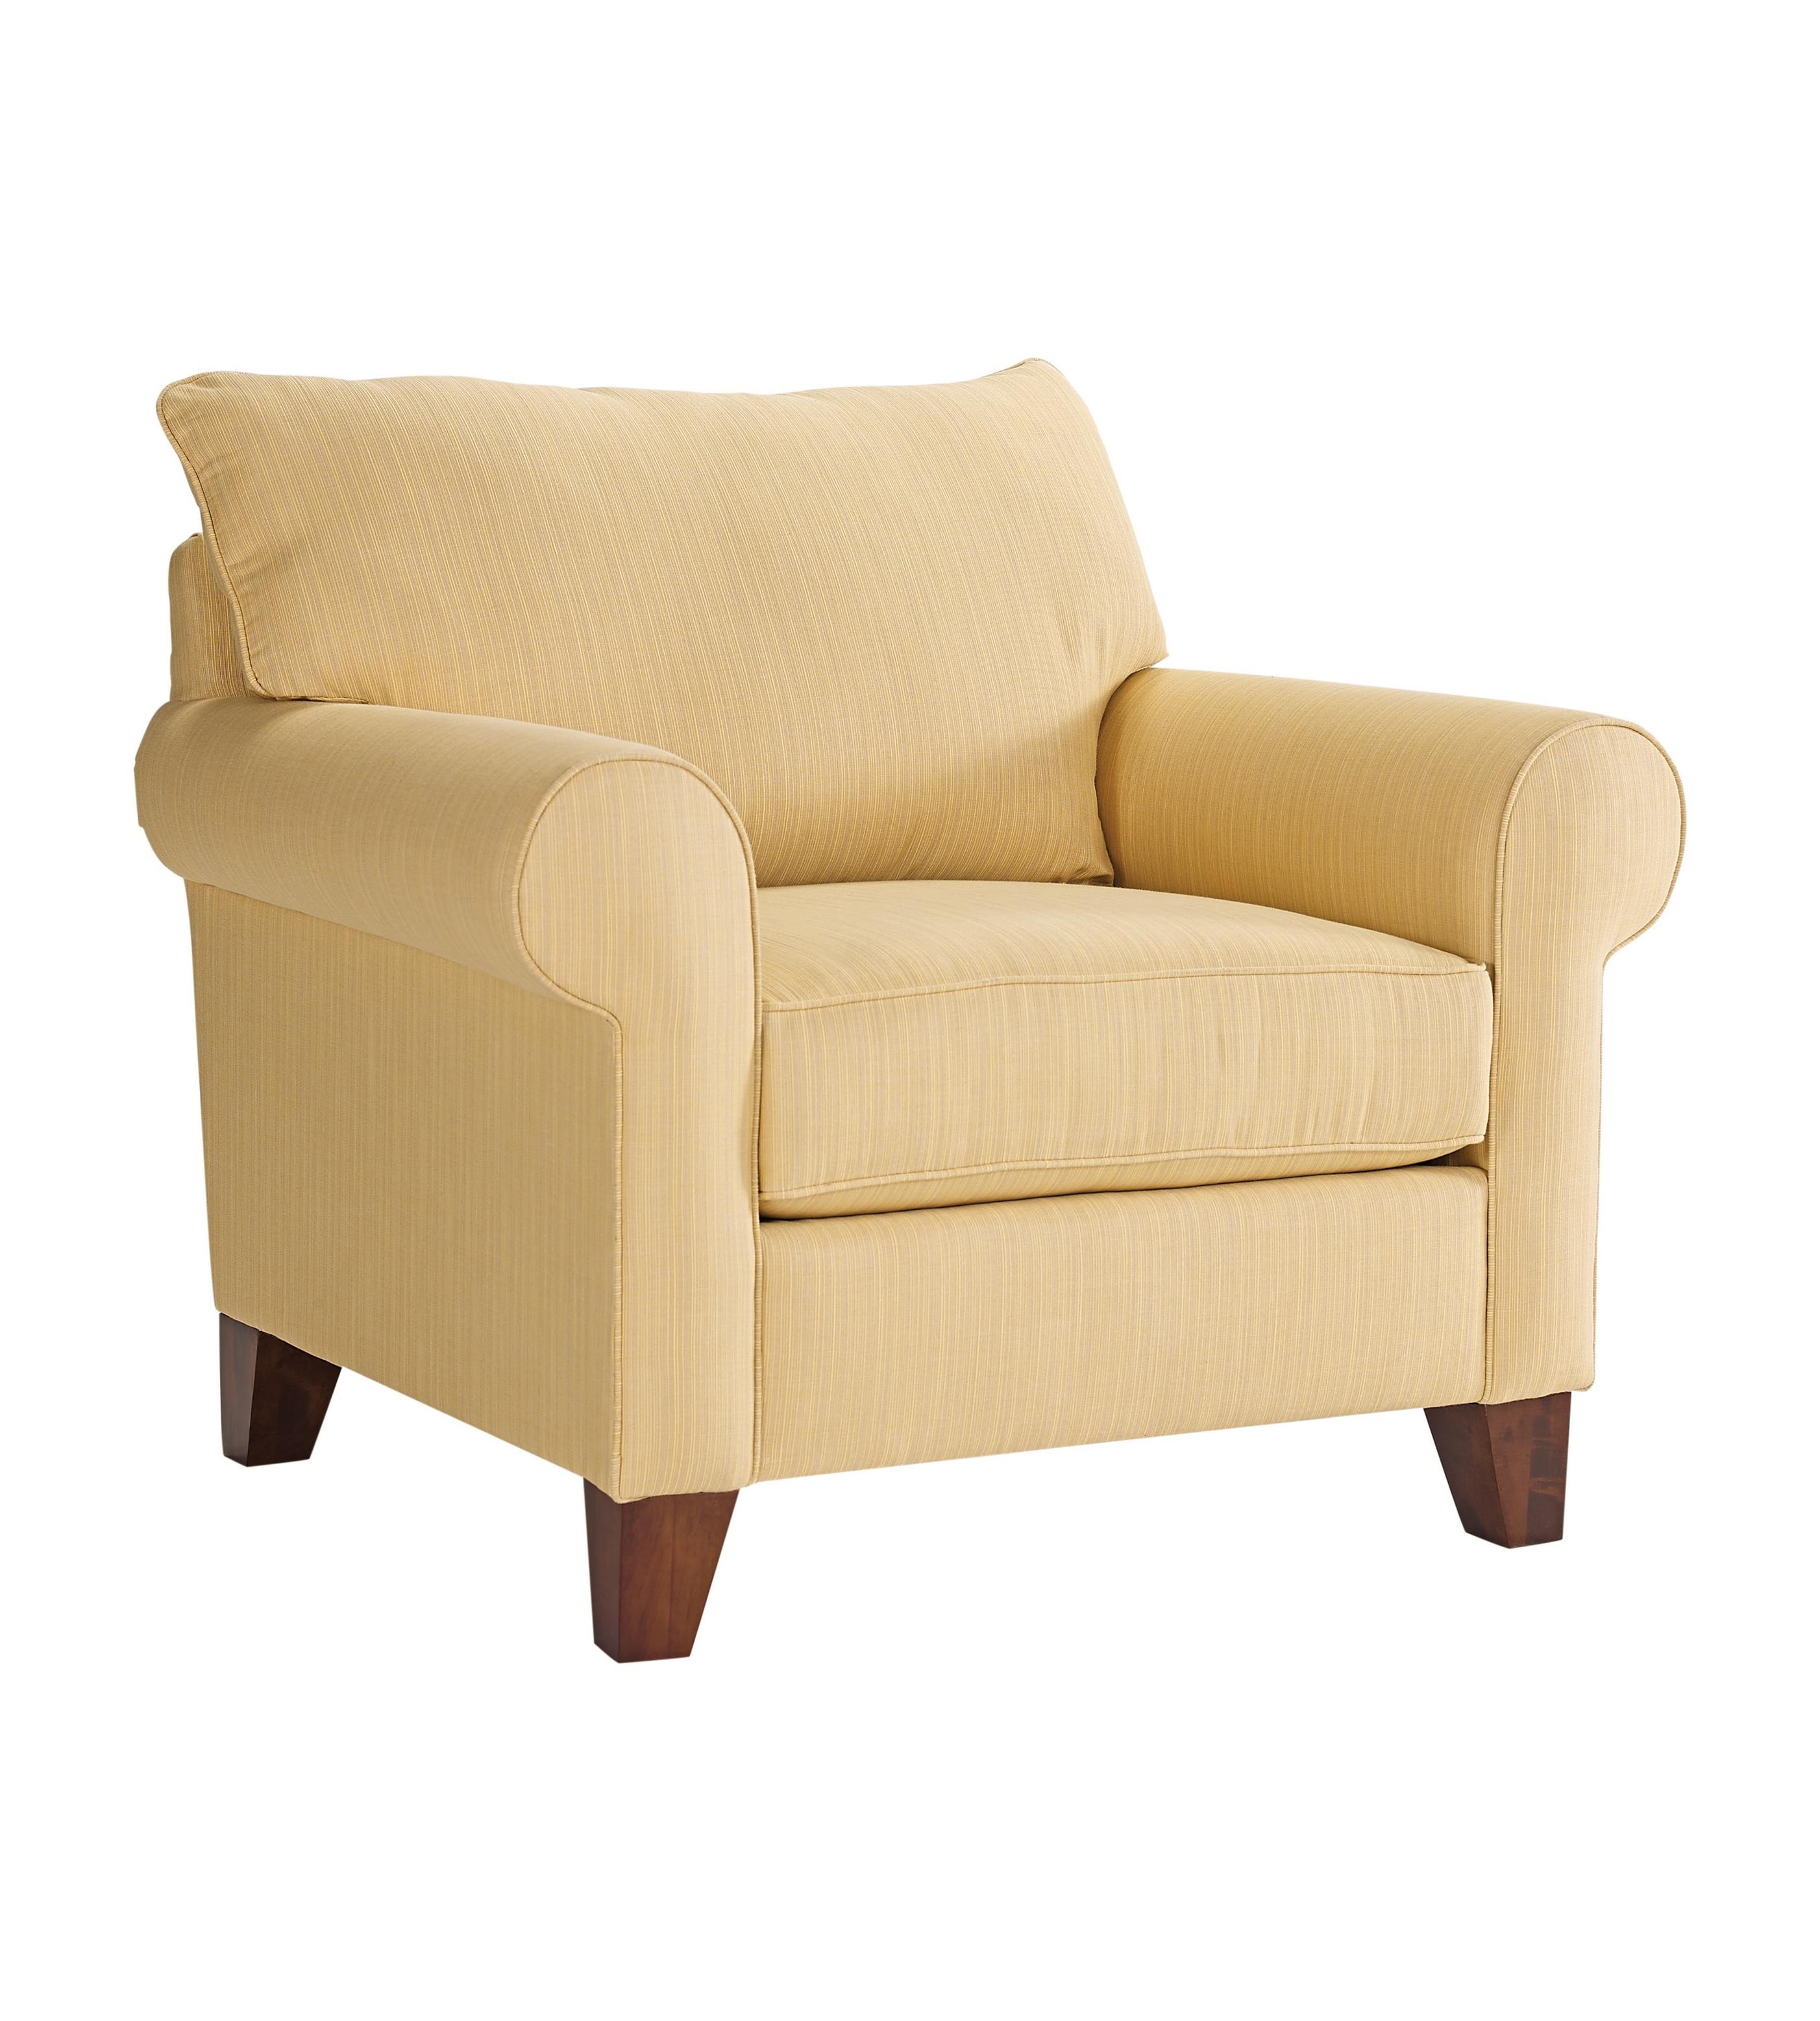 Broyhill Furniture Noda Transitional Chair and a Half - Item Number: S4230-0-8012-0000